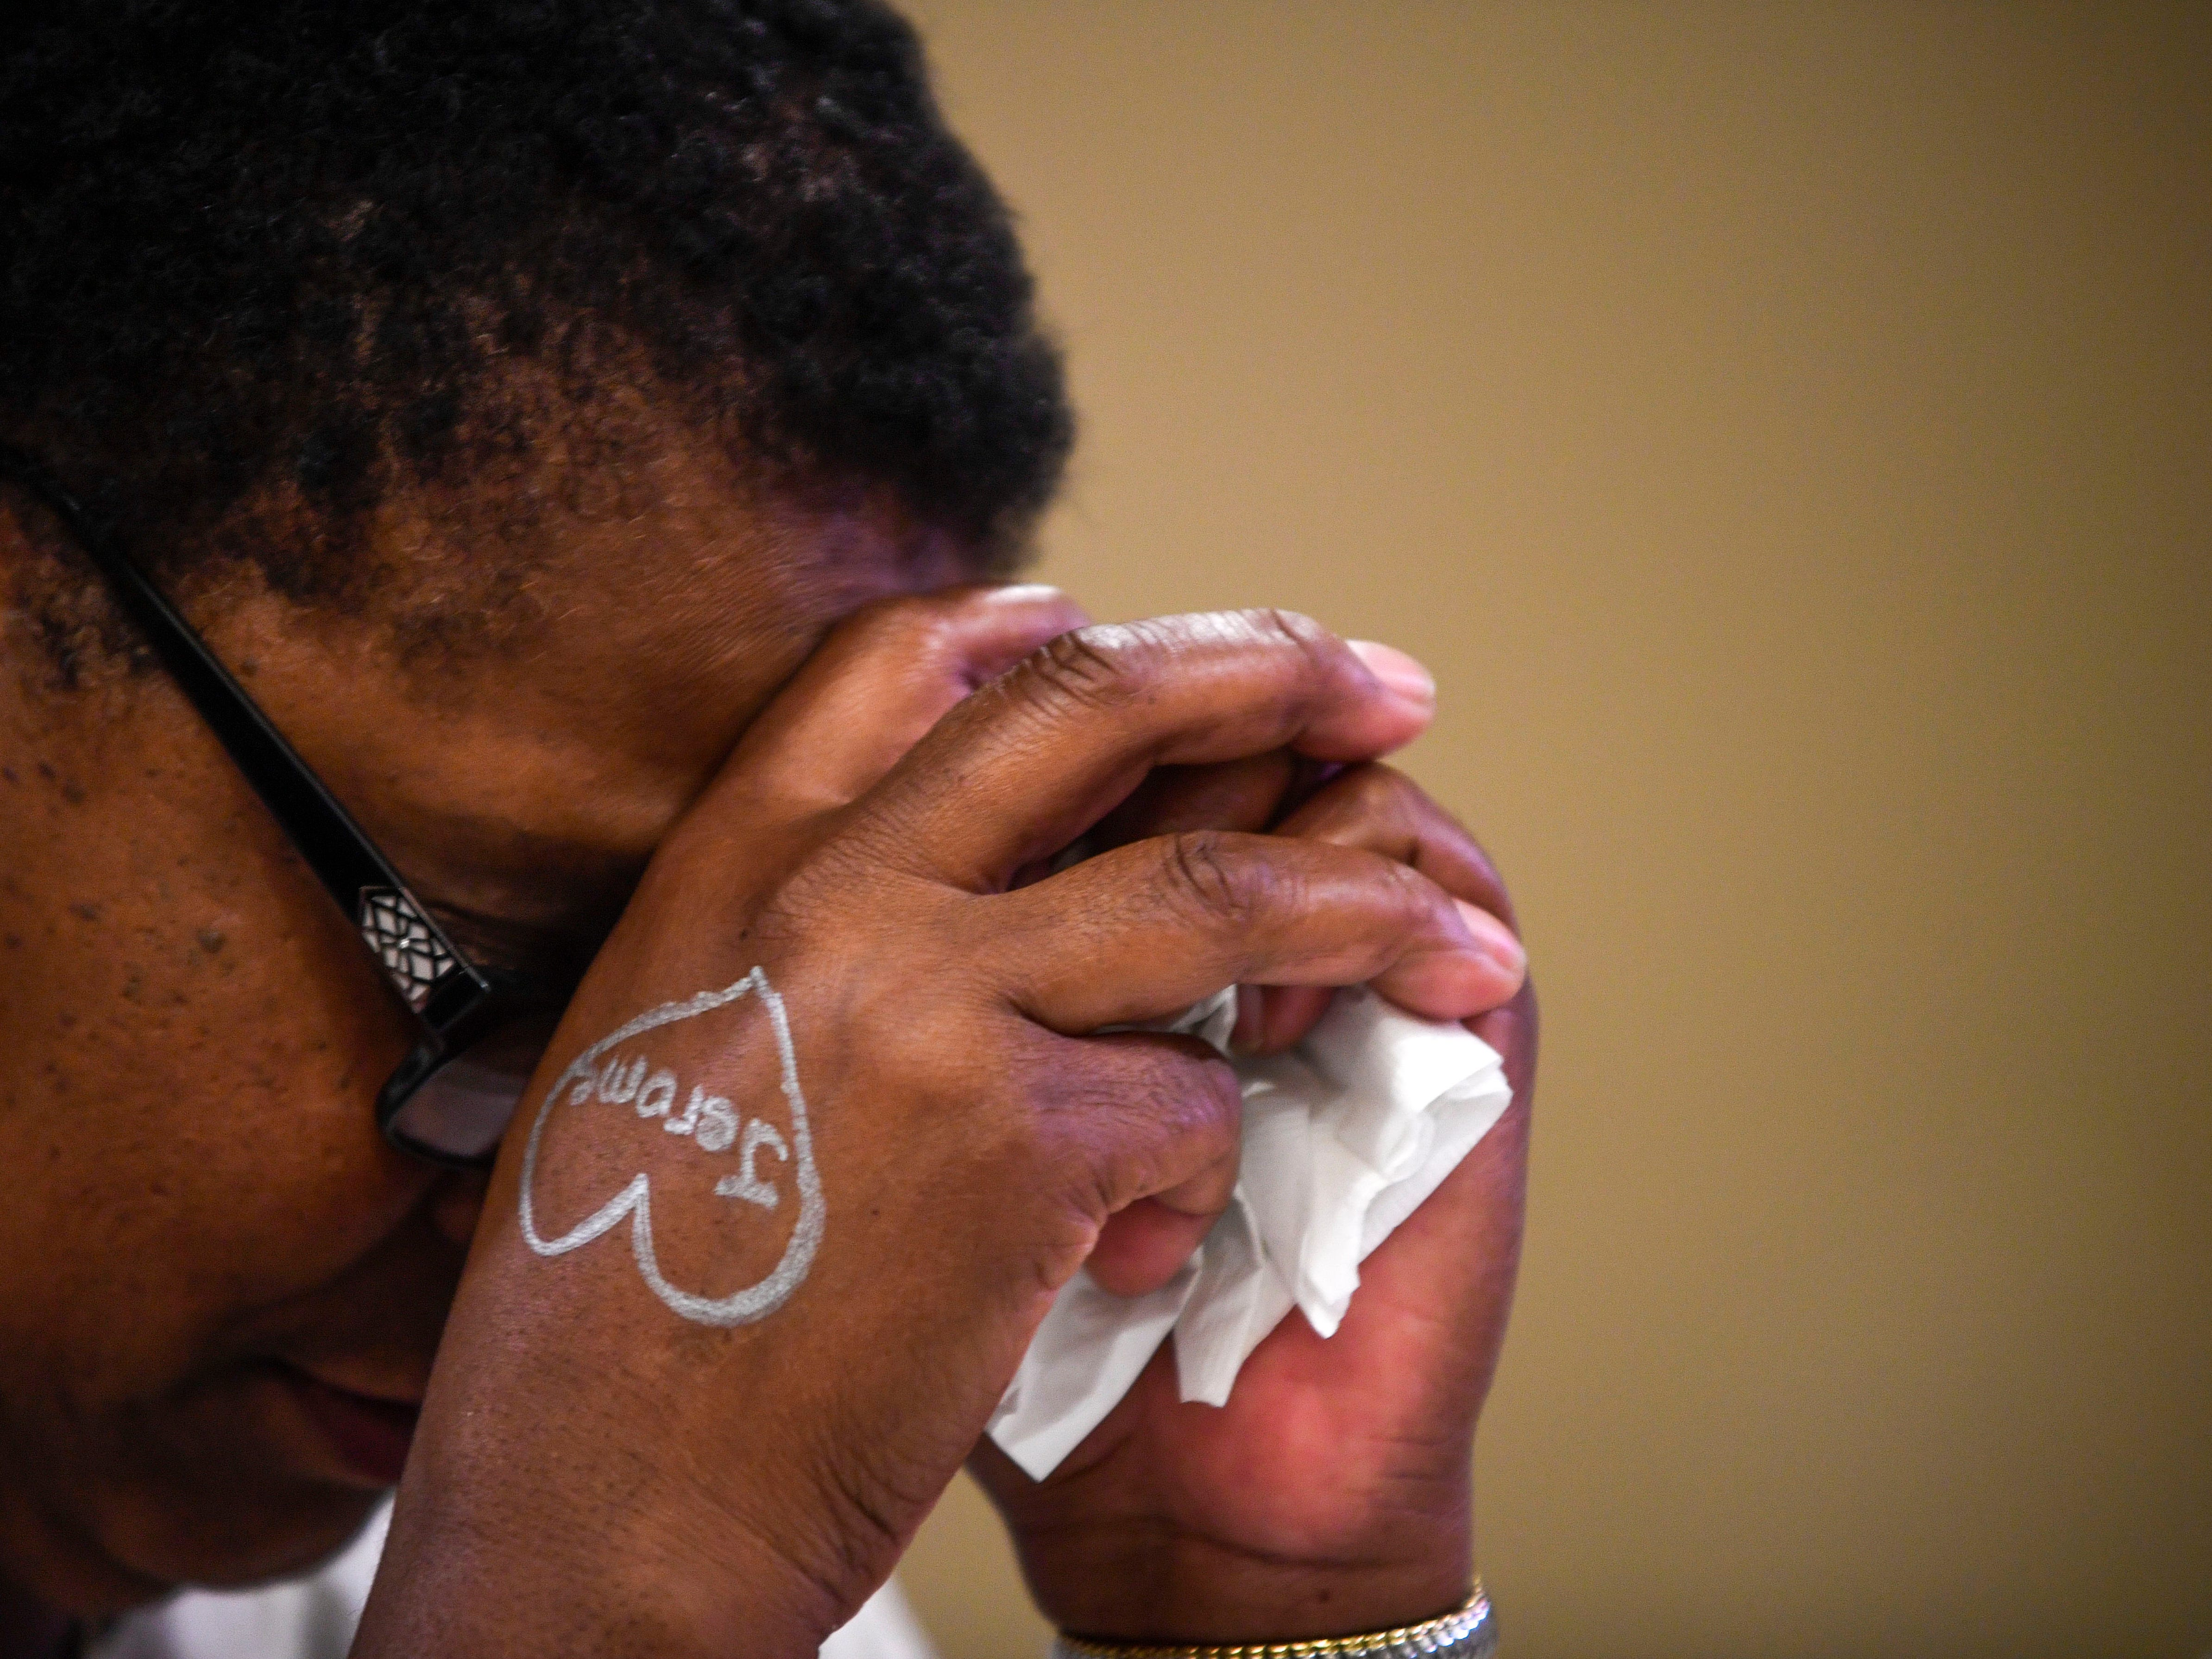 Norma Ellington bows her head for a prayer during the annual Remember Me Walk hosted at Union University in Jackson, Tenn., on Monday, Oct. 1, 2018. Ellington has attended the walk ever since she lost her son, Jerome, ten years ago.